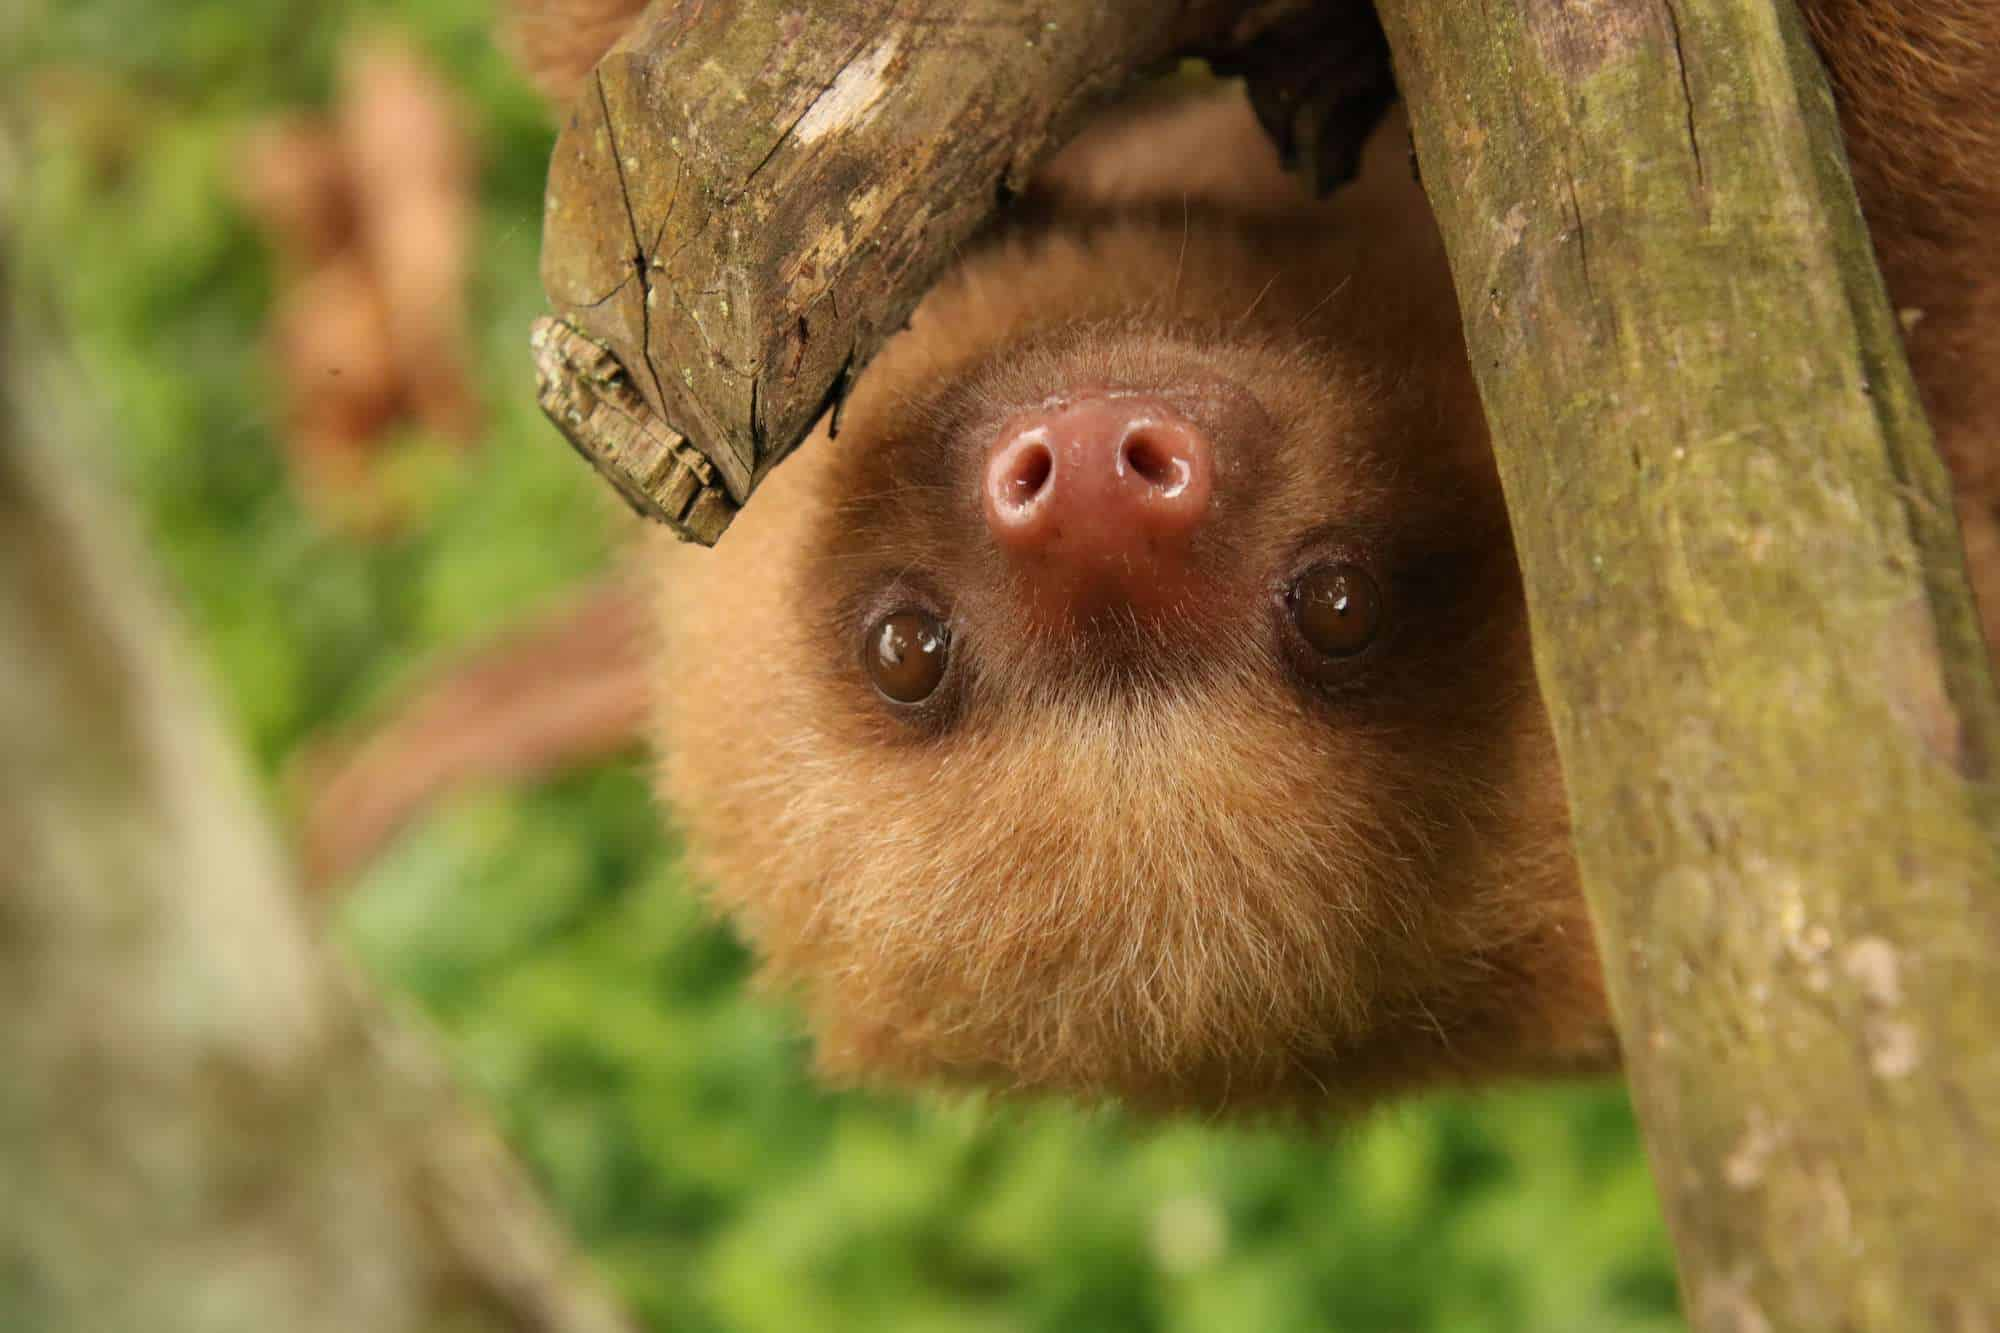 Marilla, a baby sloth at Toucan Rescue Ranch. Isn't she cute?